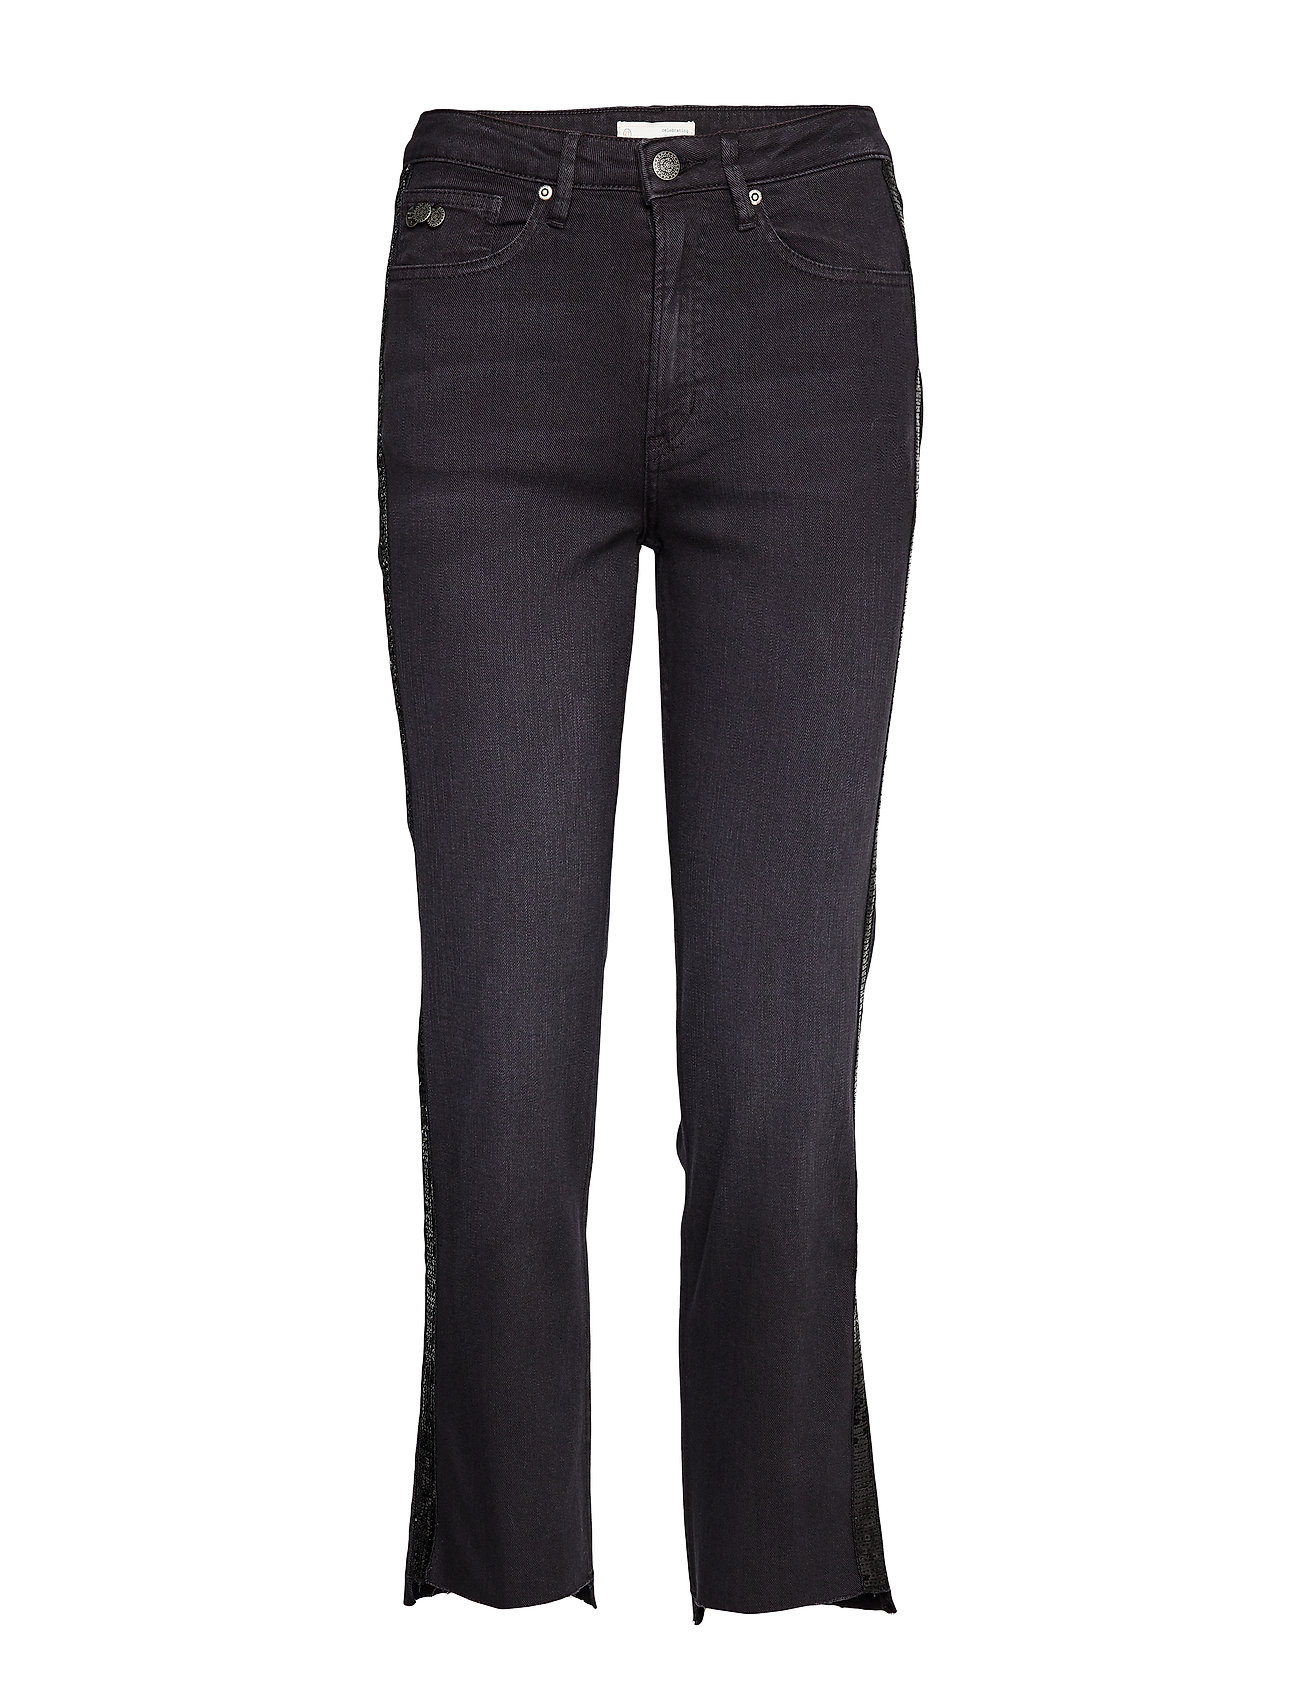 ODD MOLLY Soul On Fire Jeans - ALMOST BLACK